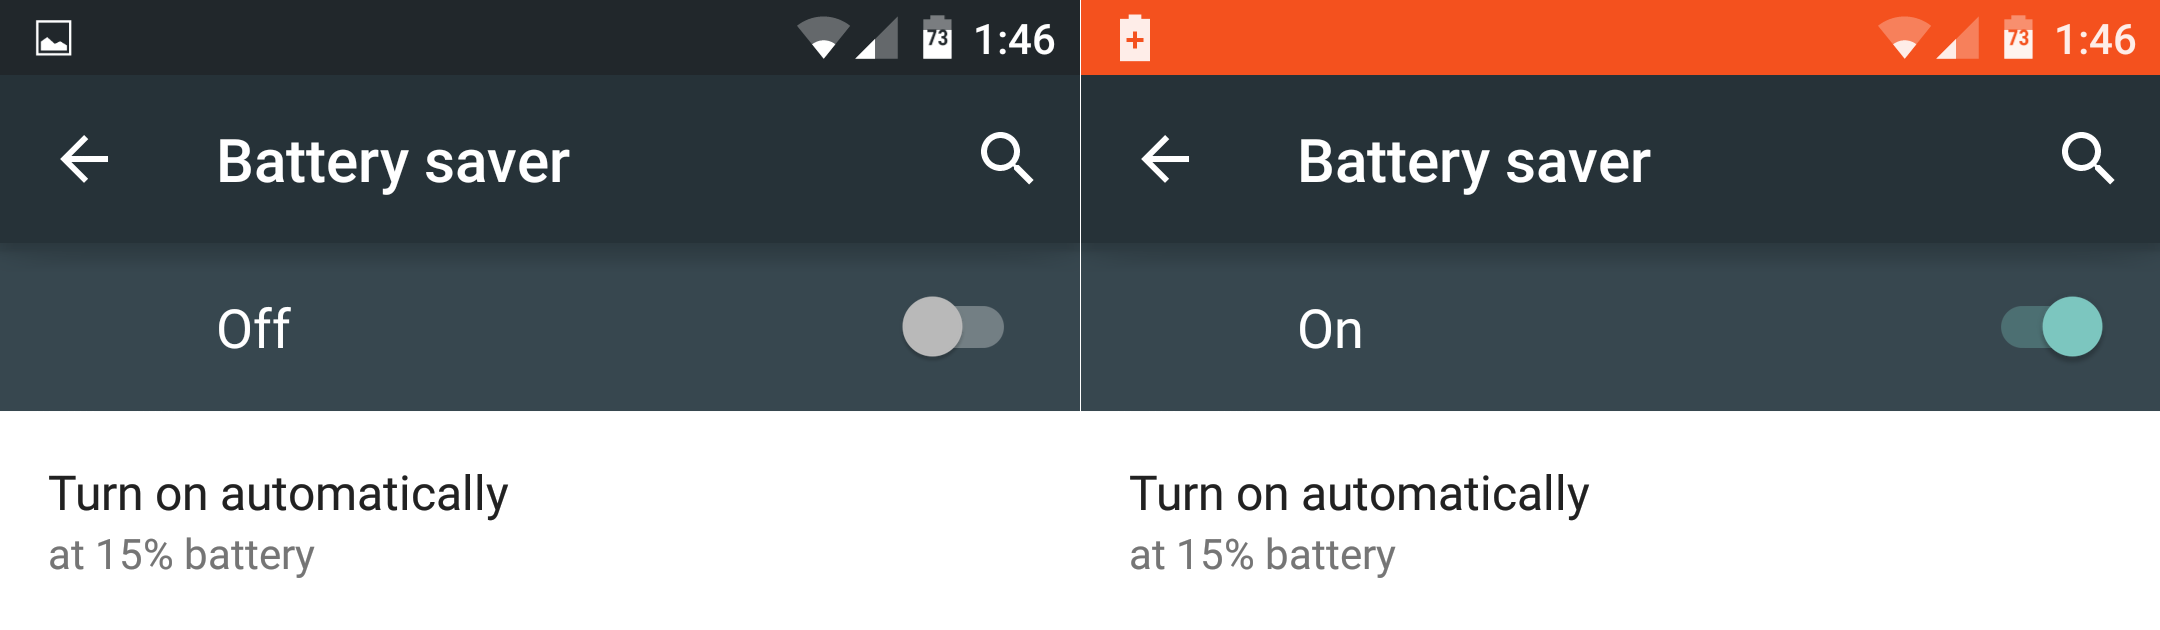 Android 5.0 - Automatic Battery Saver